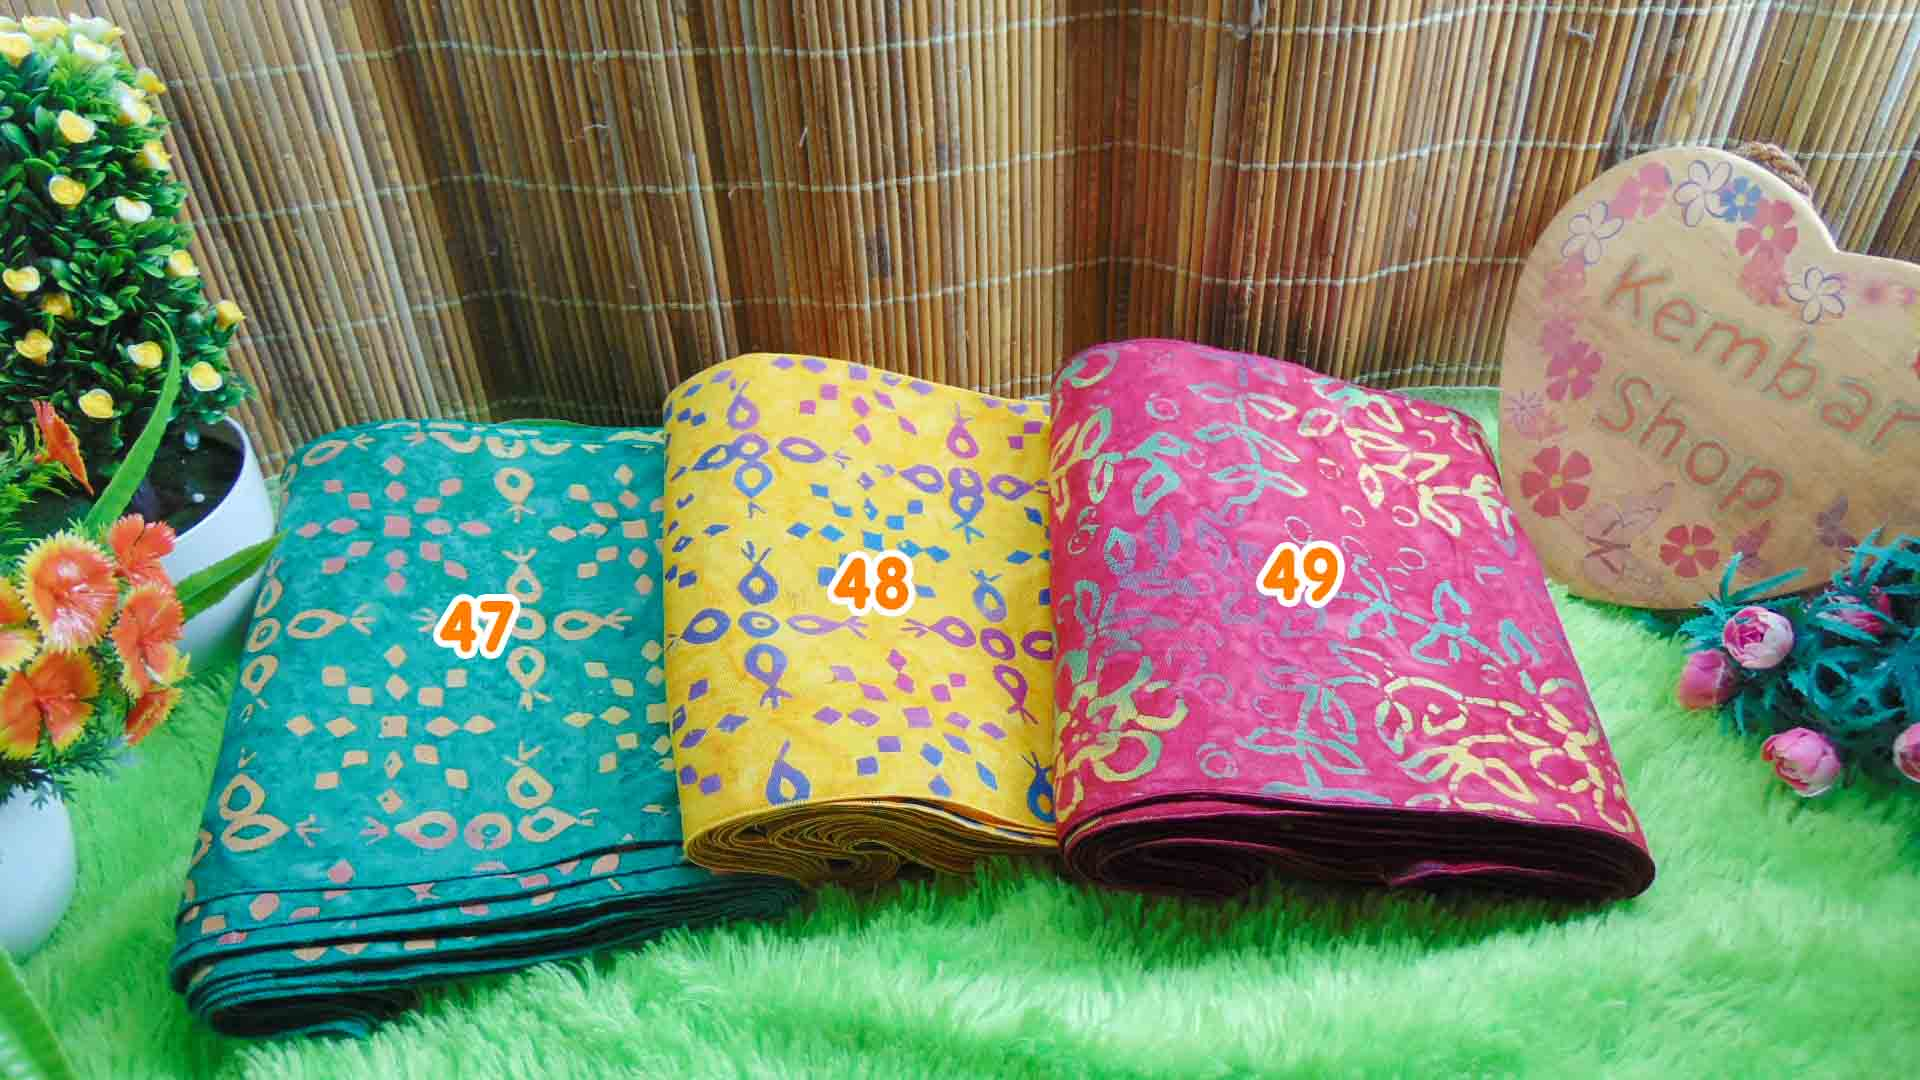 bengkung belly binding katun 10m -